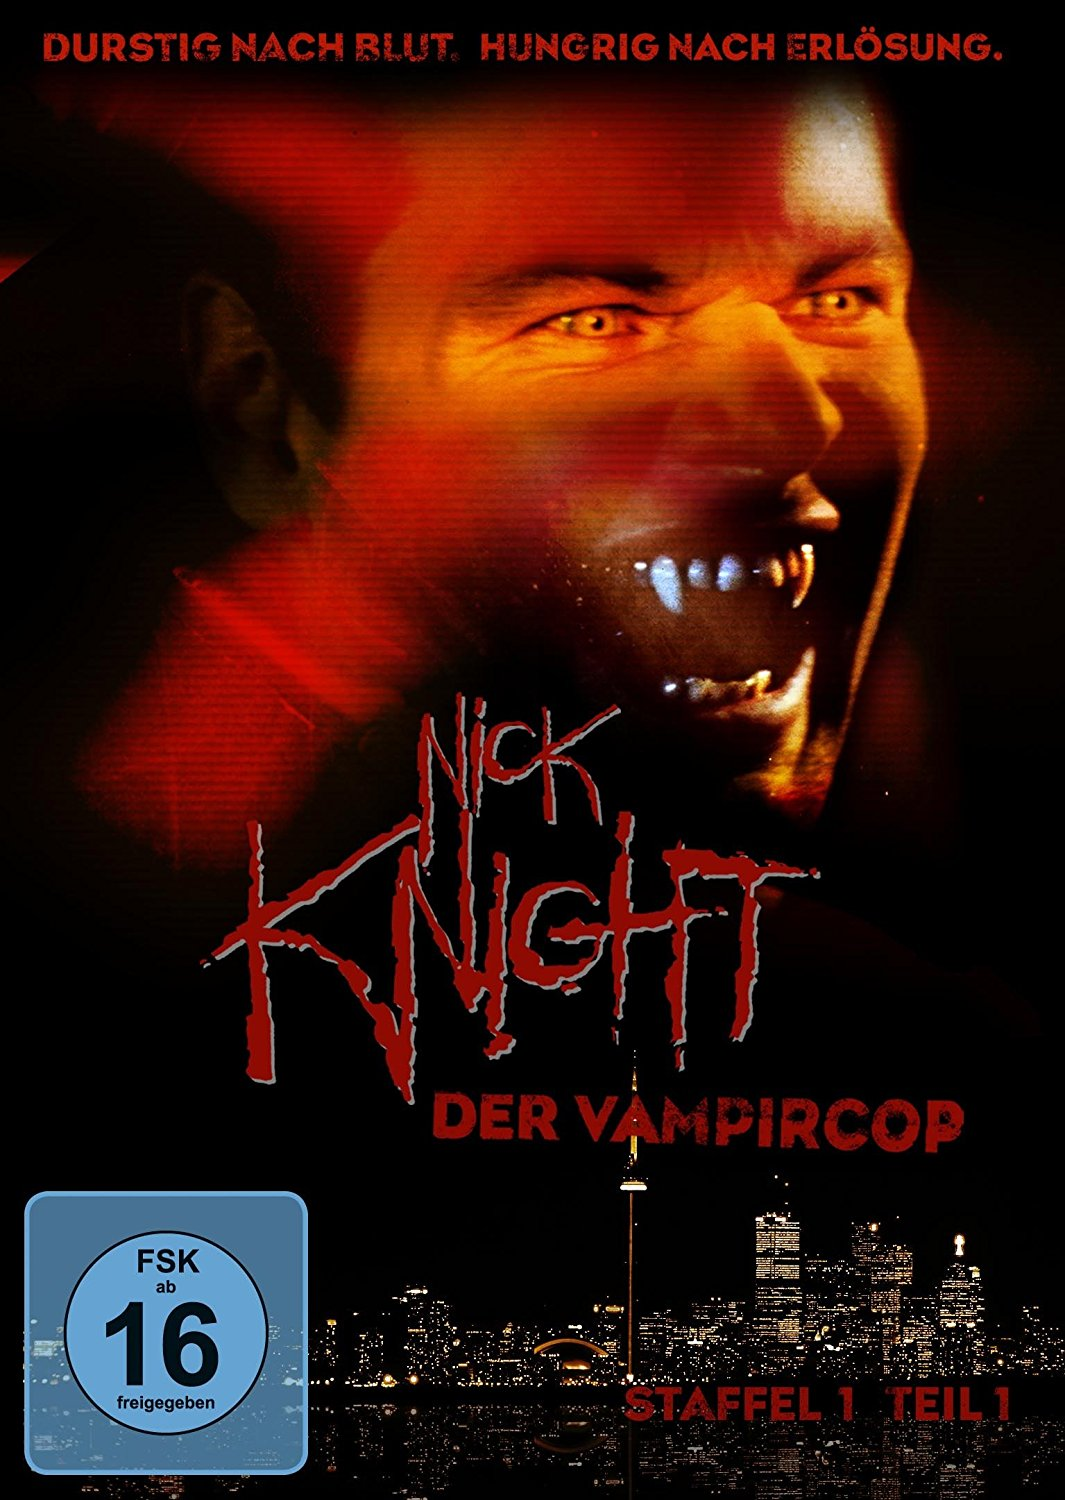 Nick Knight - der Vampircop